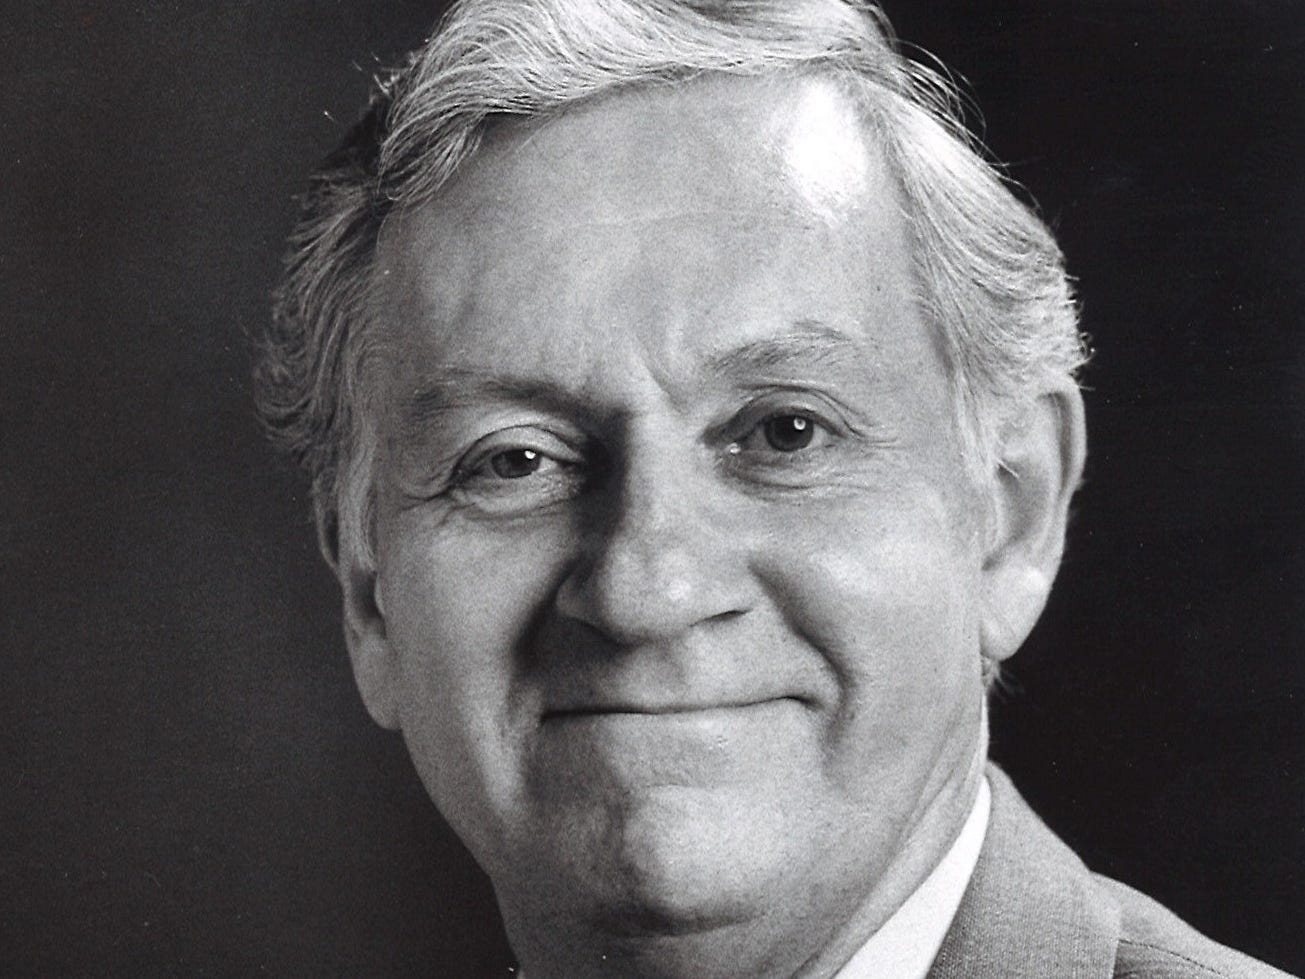 Longtime Courier Journal critic Dudley Saunders. 1987 photo.